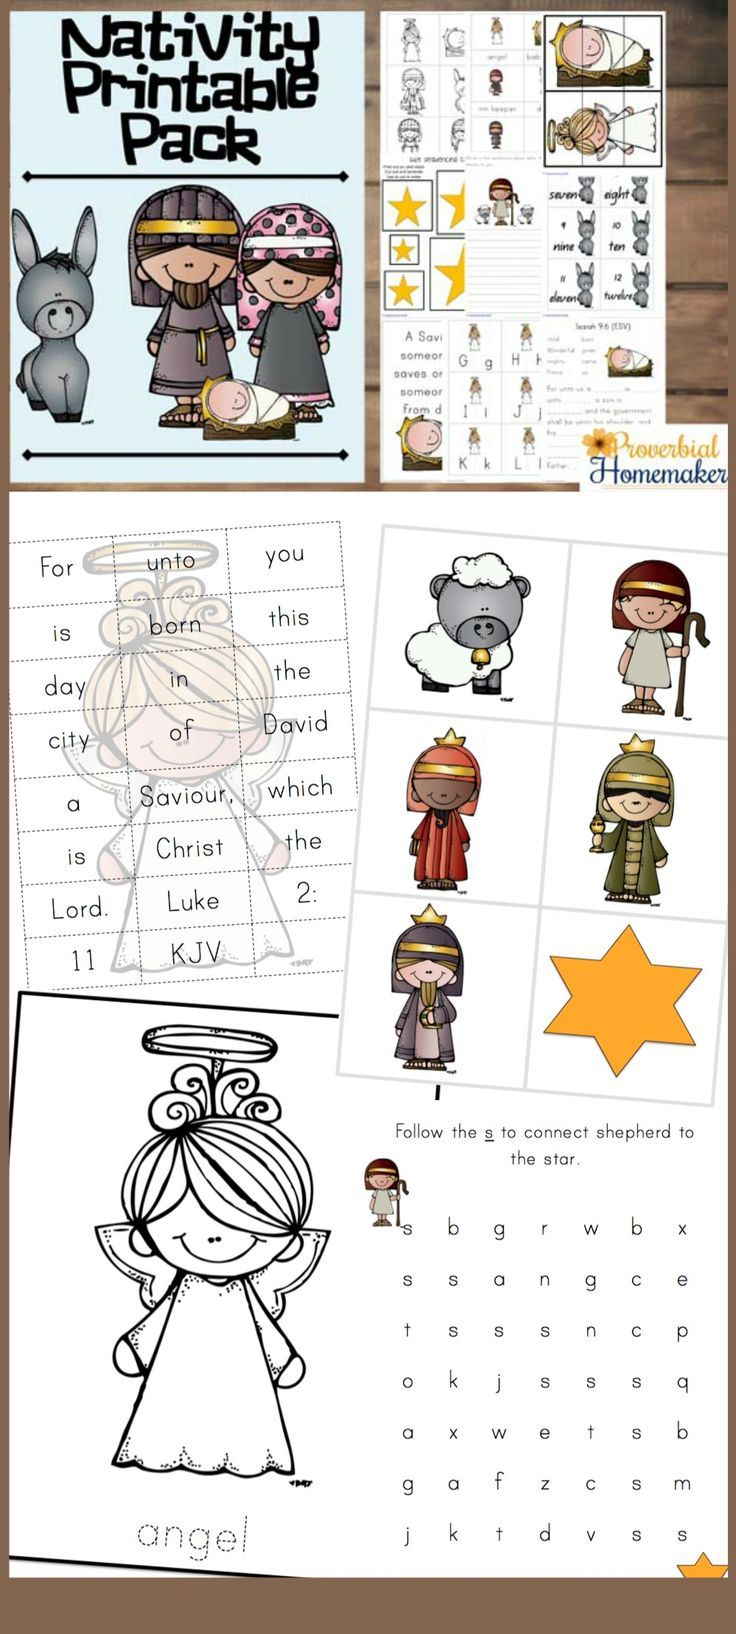 Download this fun nativity printable pack for great Christmas learning activities and a focus on Jesus! via @TaunaM